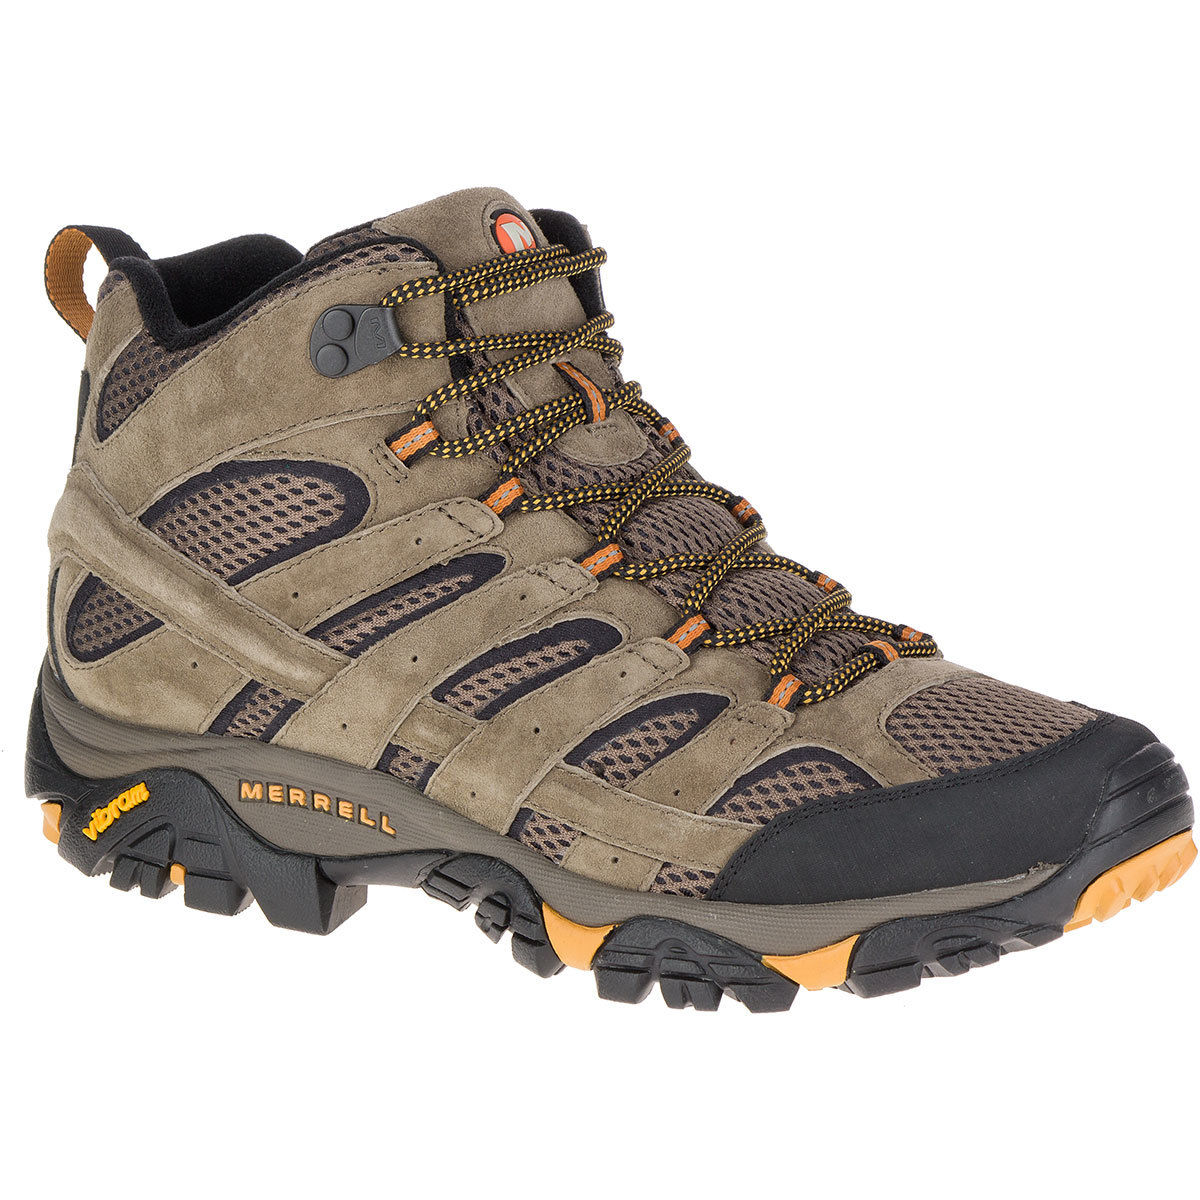 Merrell Men's Moab 2 Ventilator Mid Hiking Boots, Walnut - Brown, 10